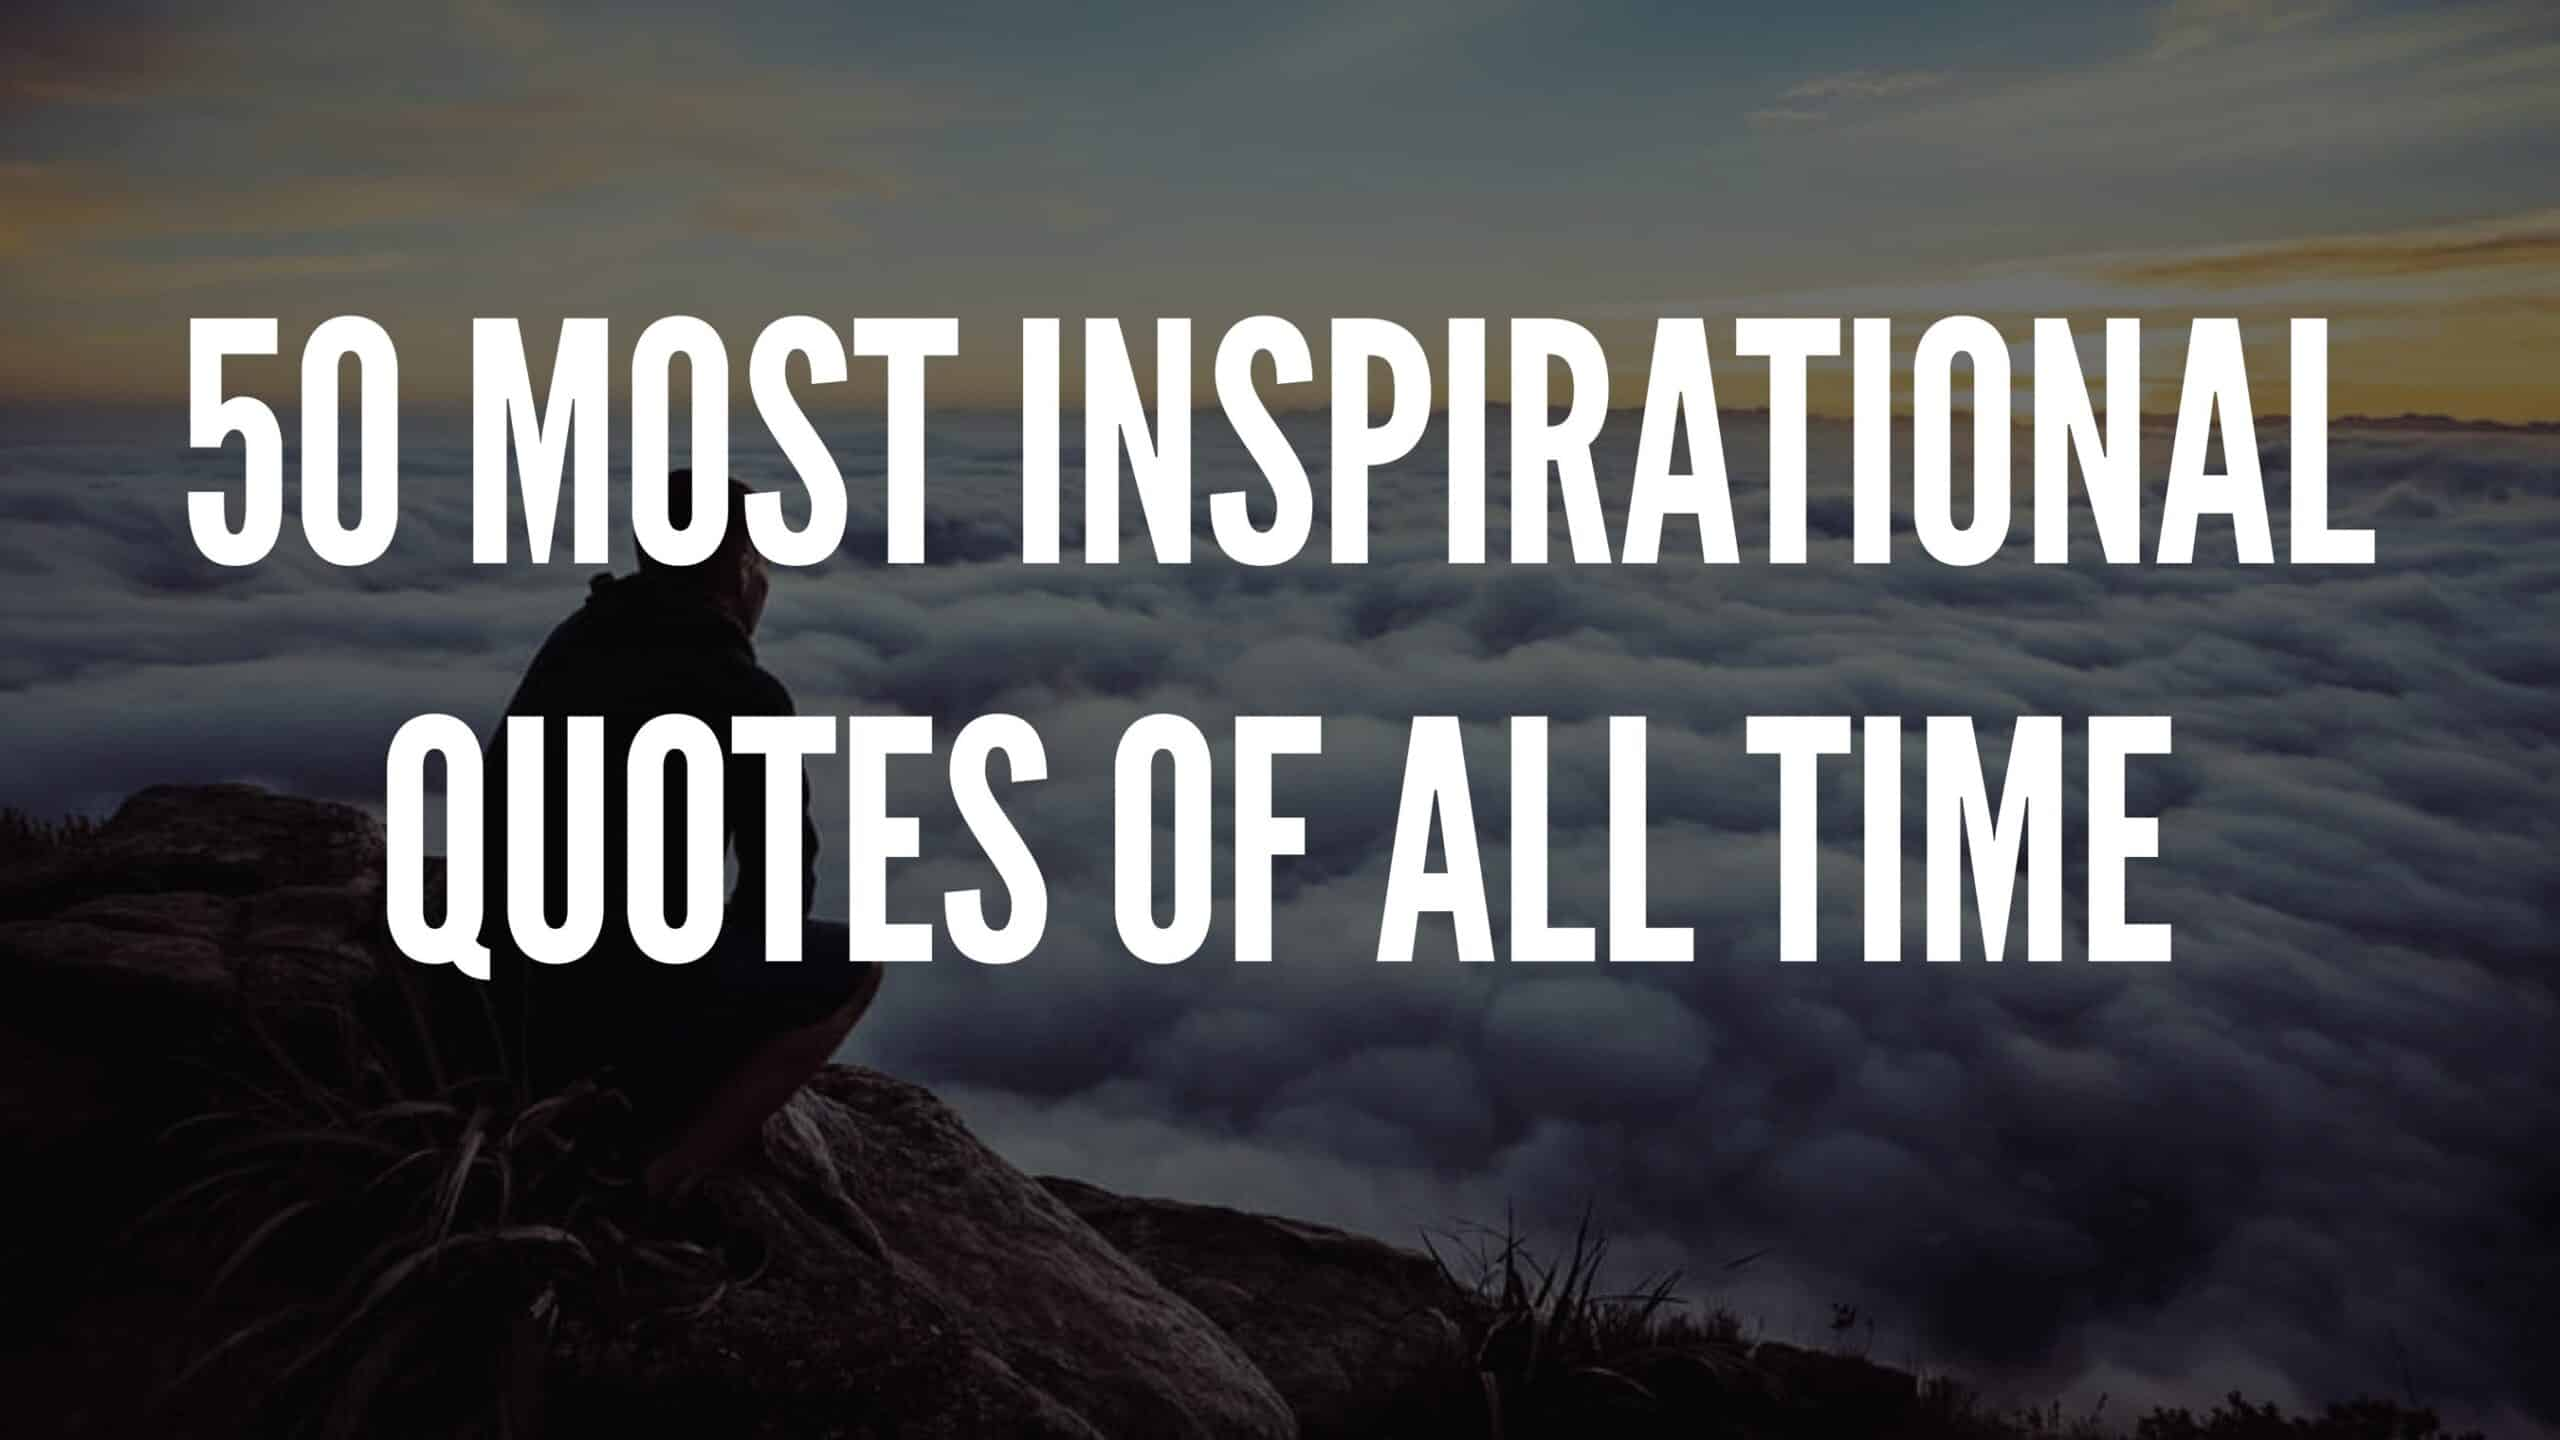 50 Most Inspirational Quotes Of All Time